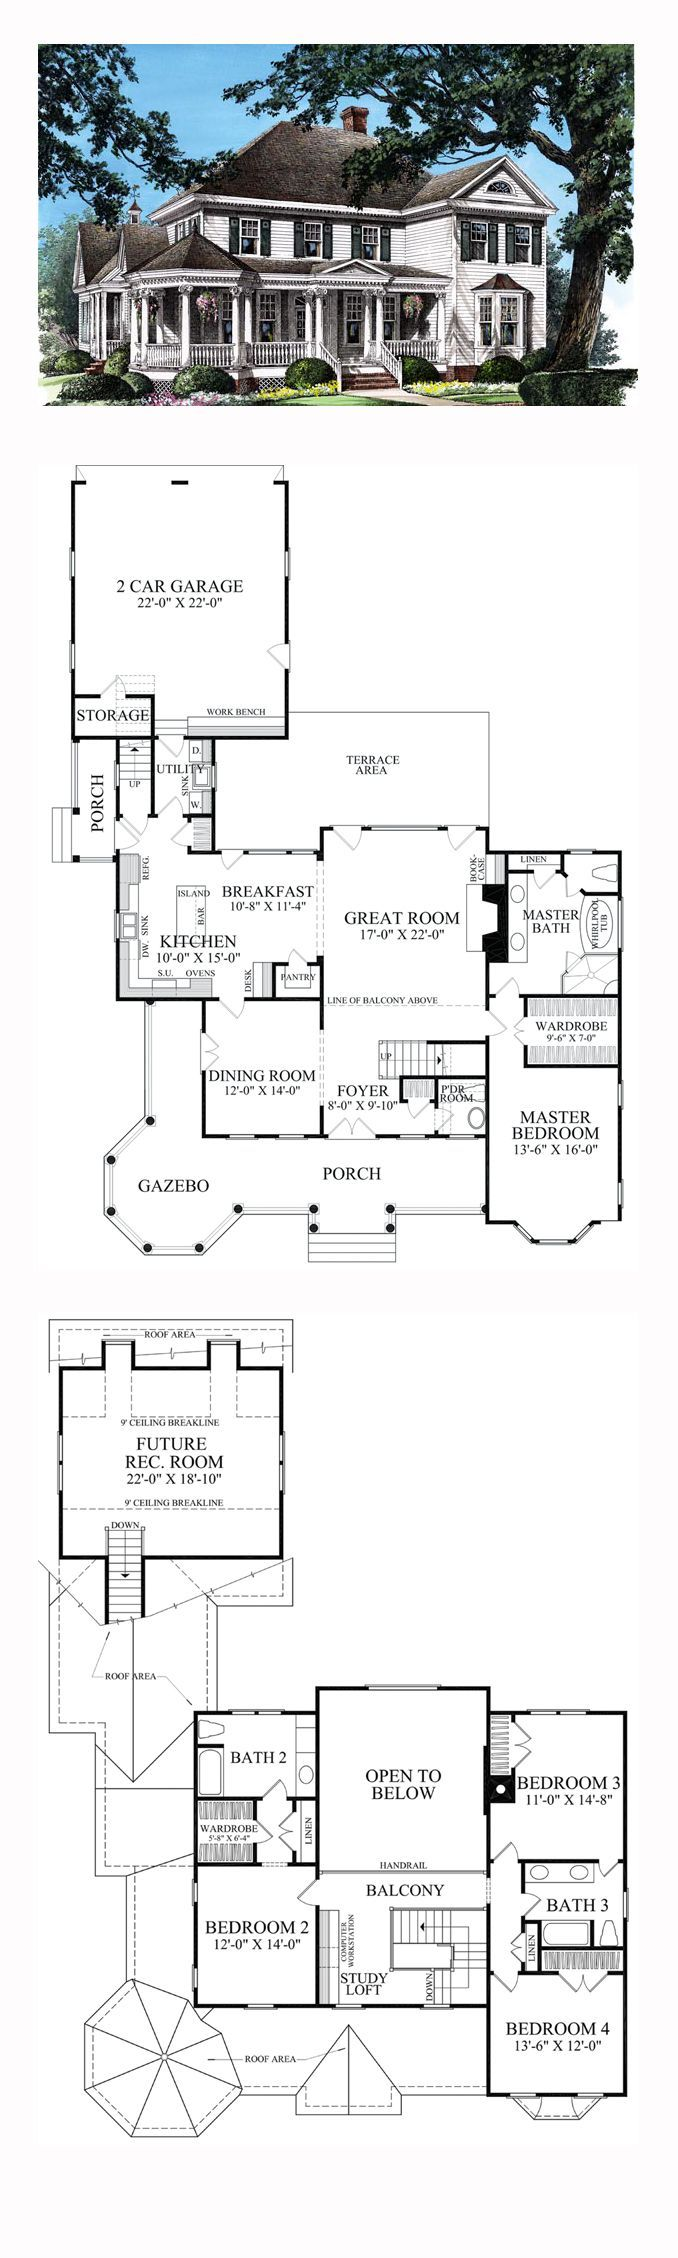 Cool house plans victorian